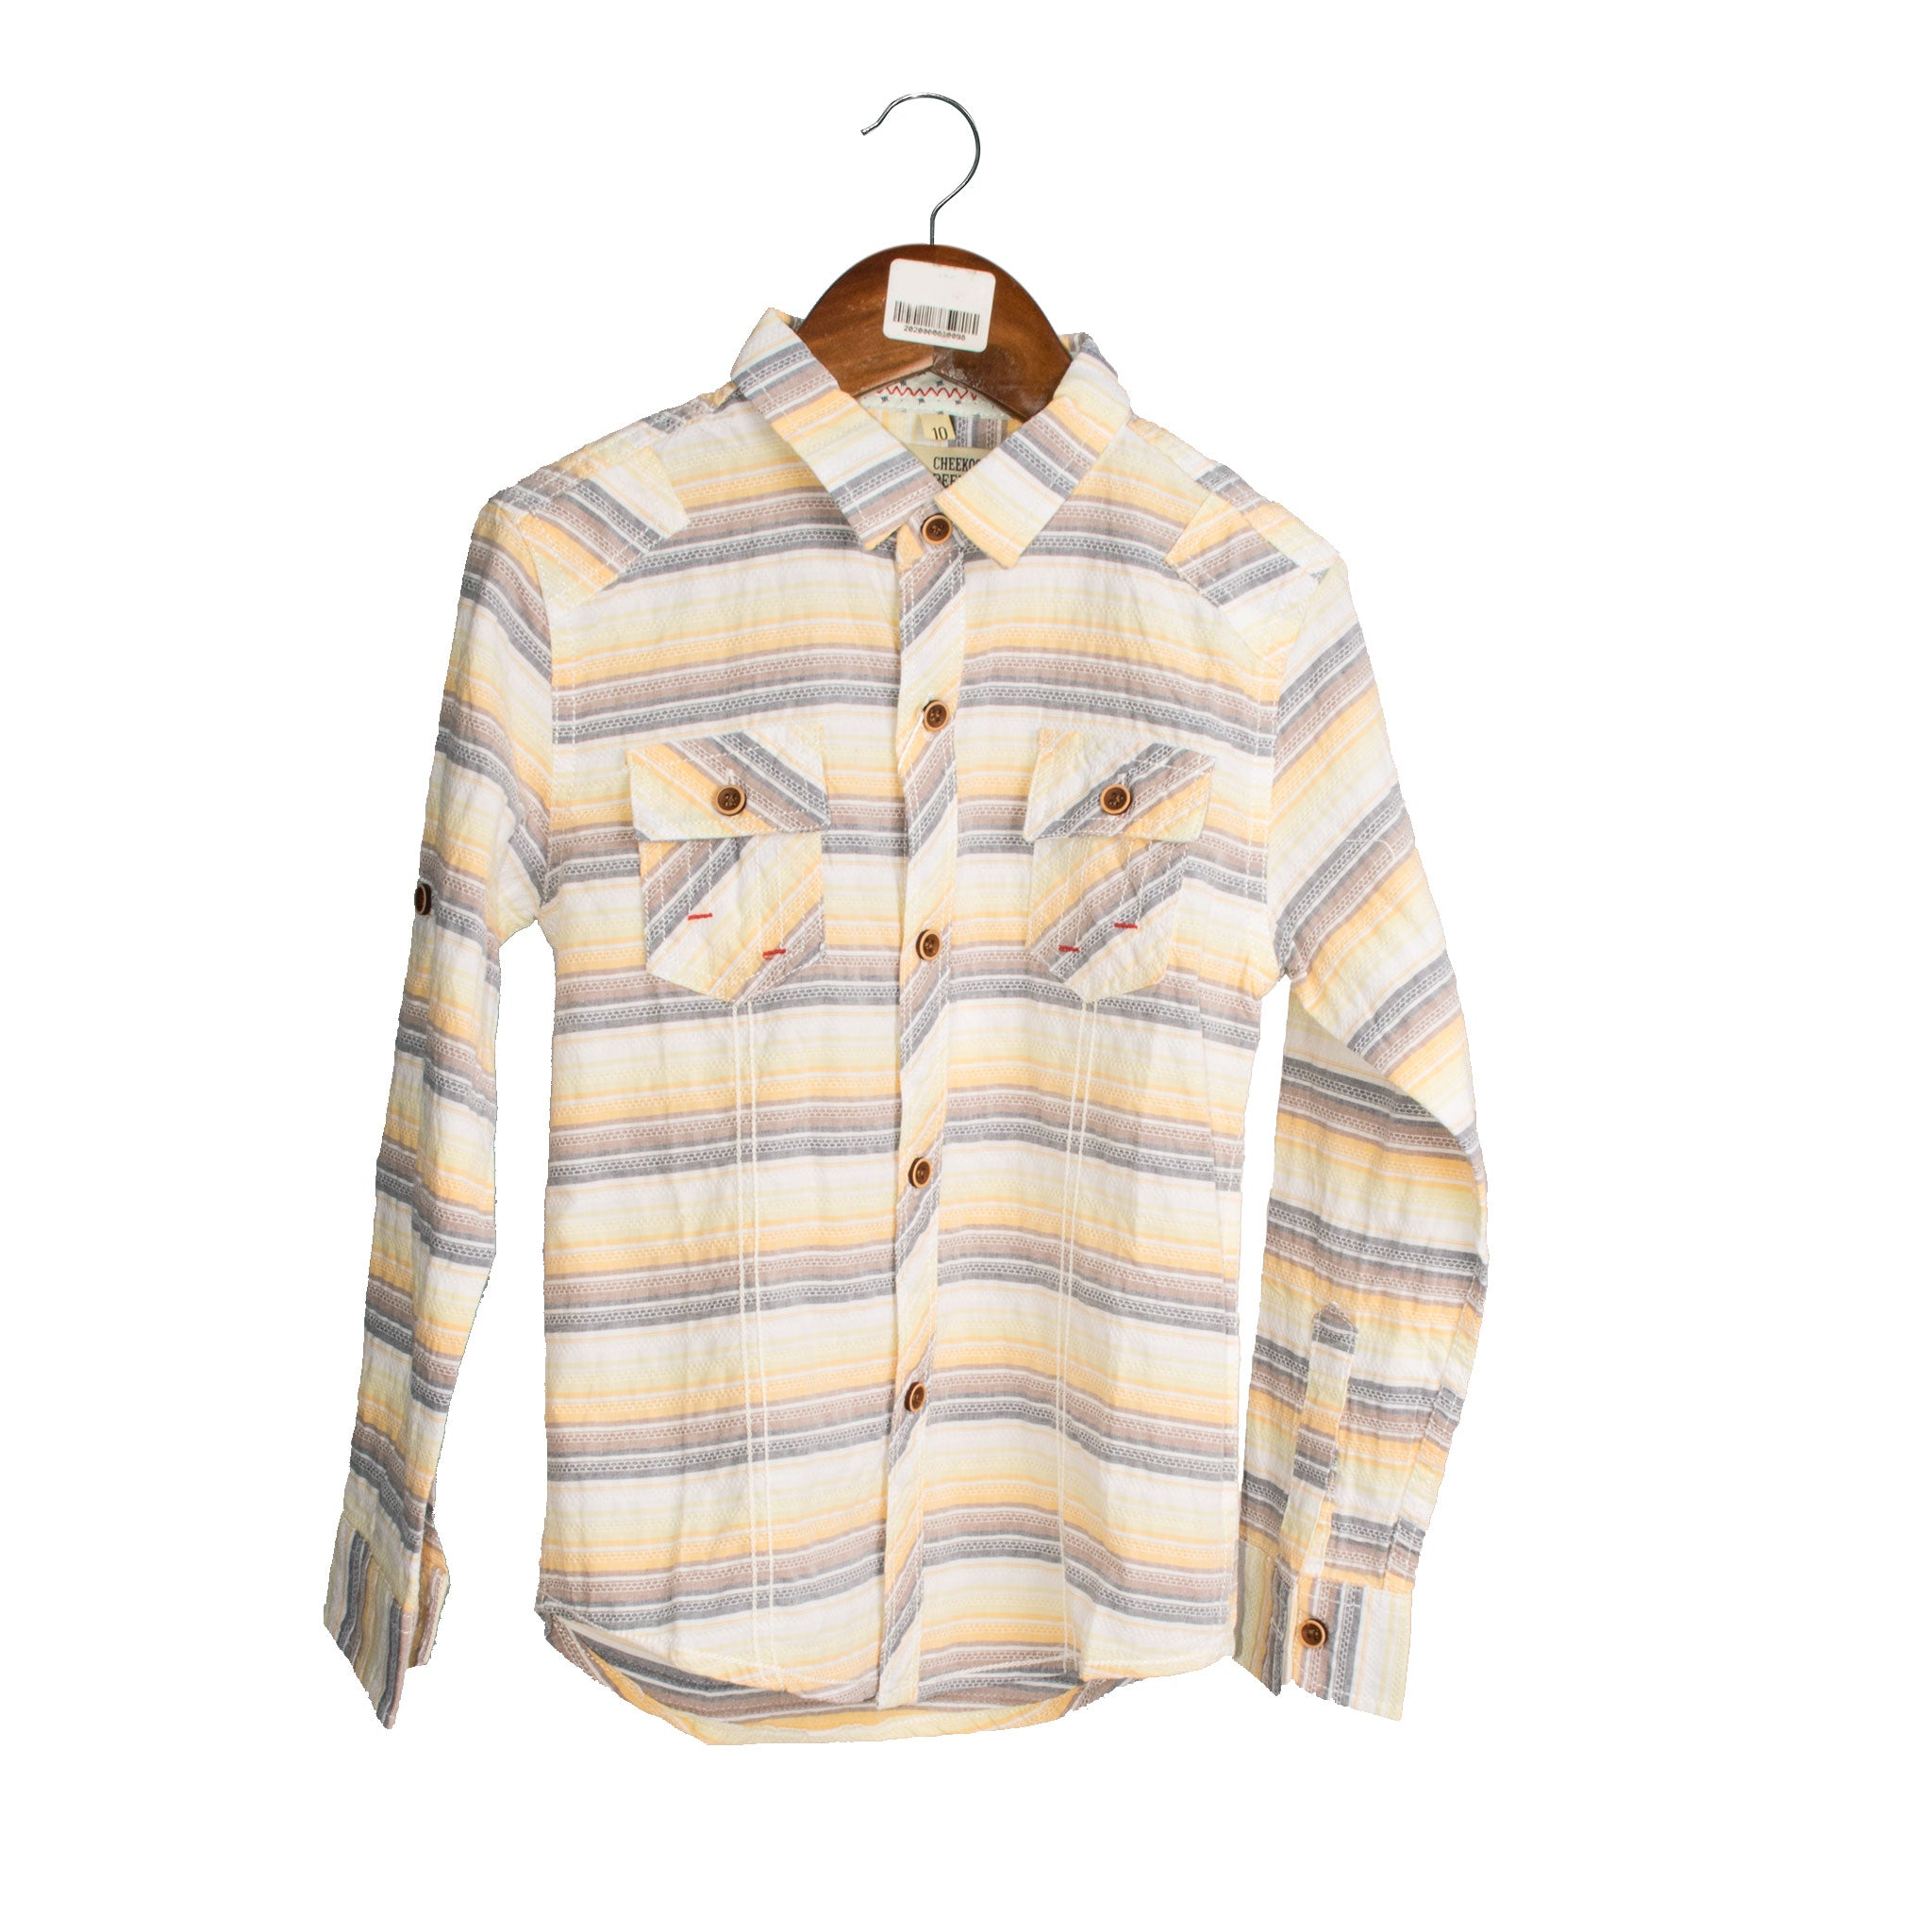 BOY'S L/S SHIRT-YELLOW / CHECK-3301 - Export Mall